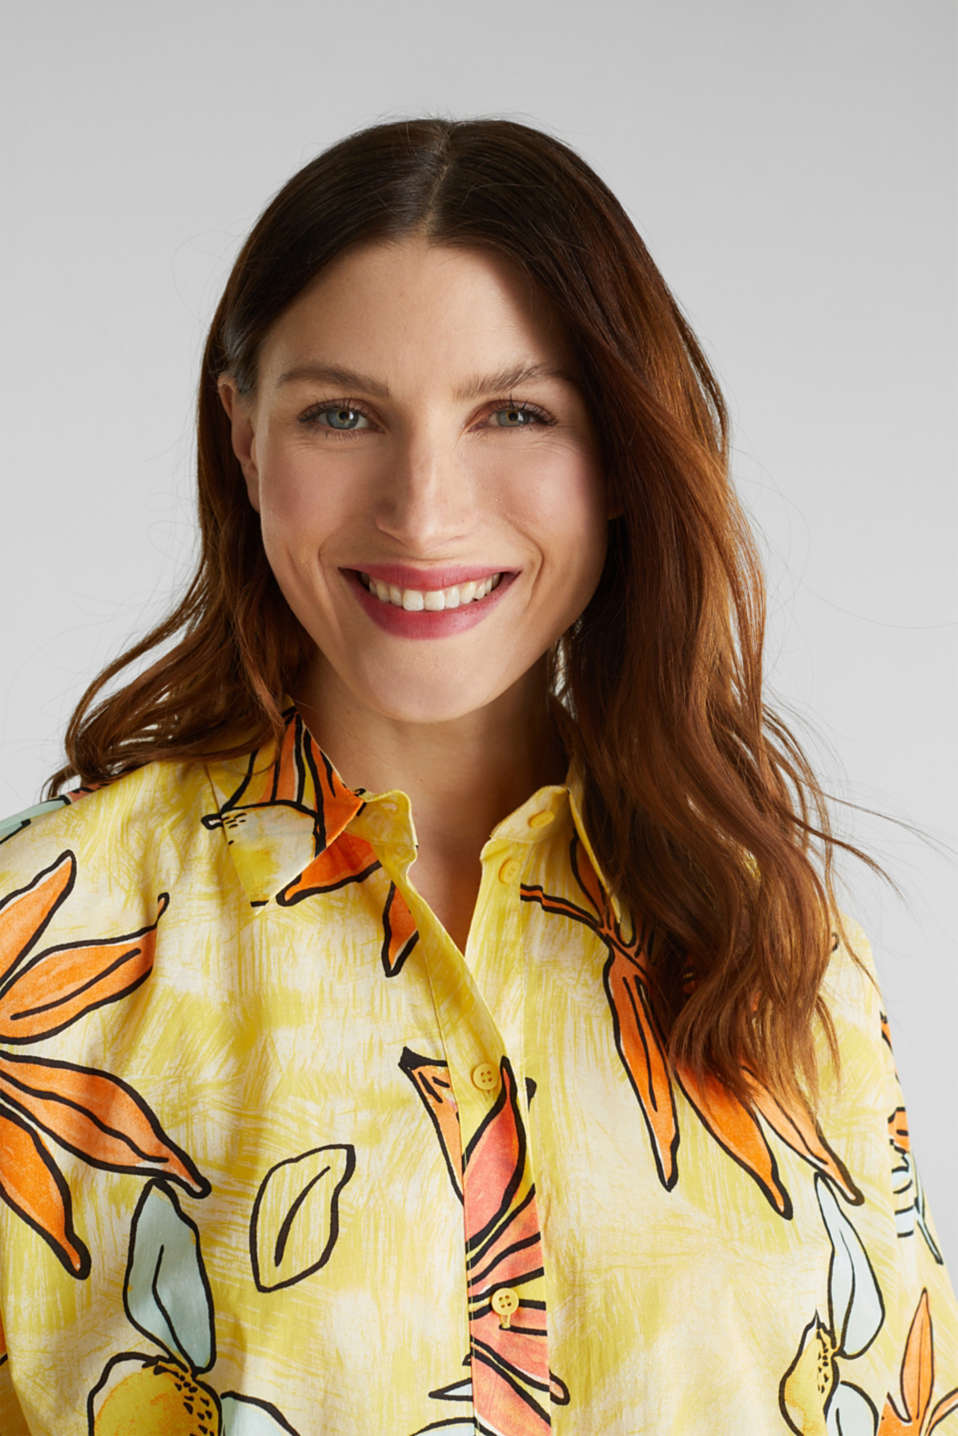 Longbluse mit Print, 100% Baumwolle, BRIGHT YELLOW 4, detail image number 6